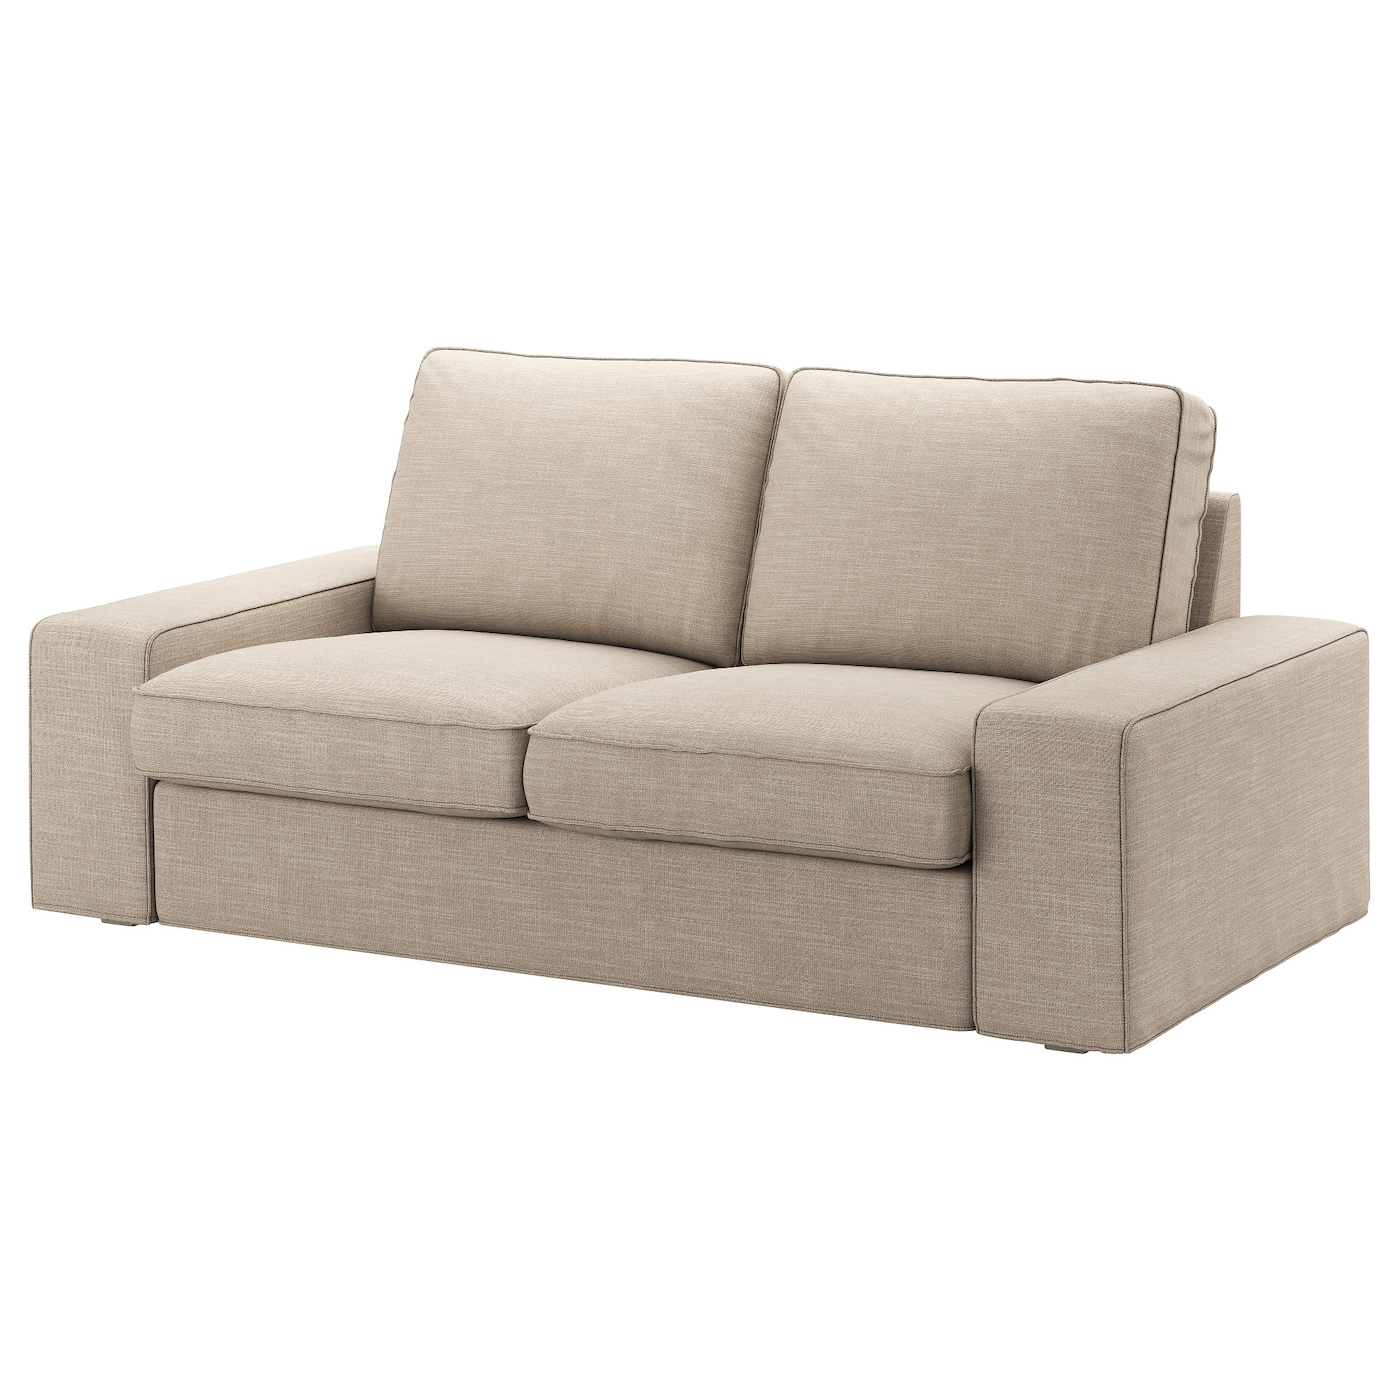 kivik two seat sofa hillared beige ikea